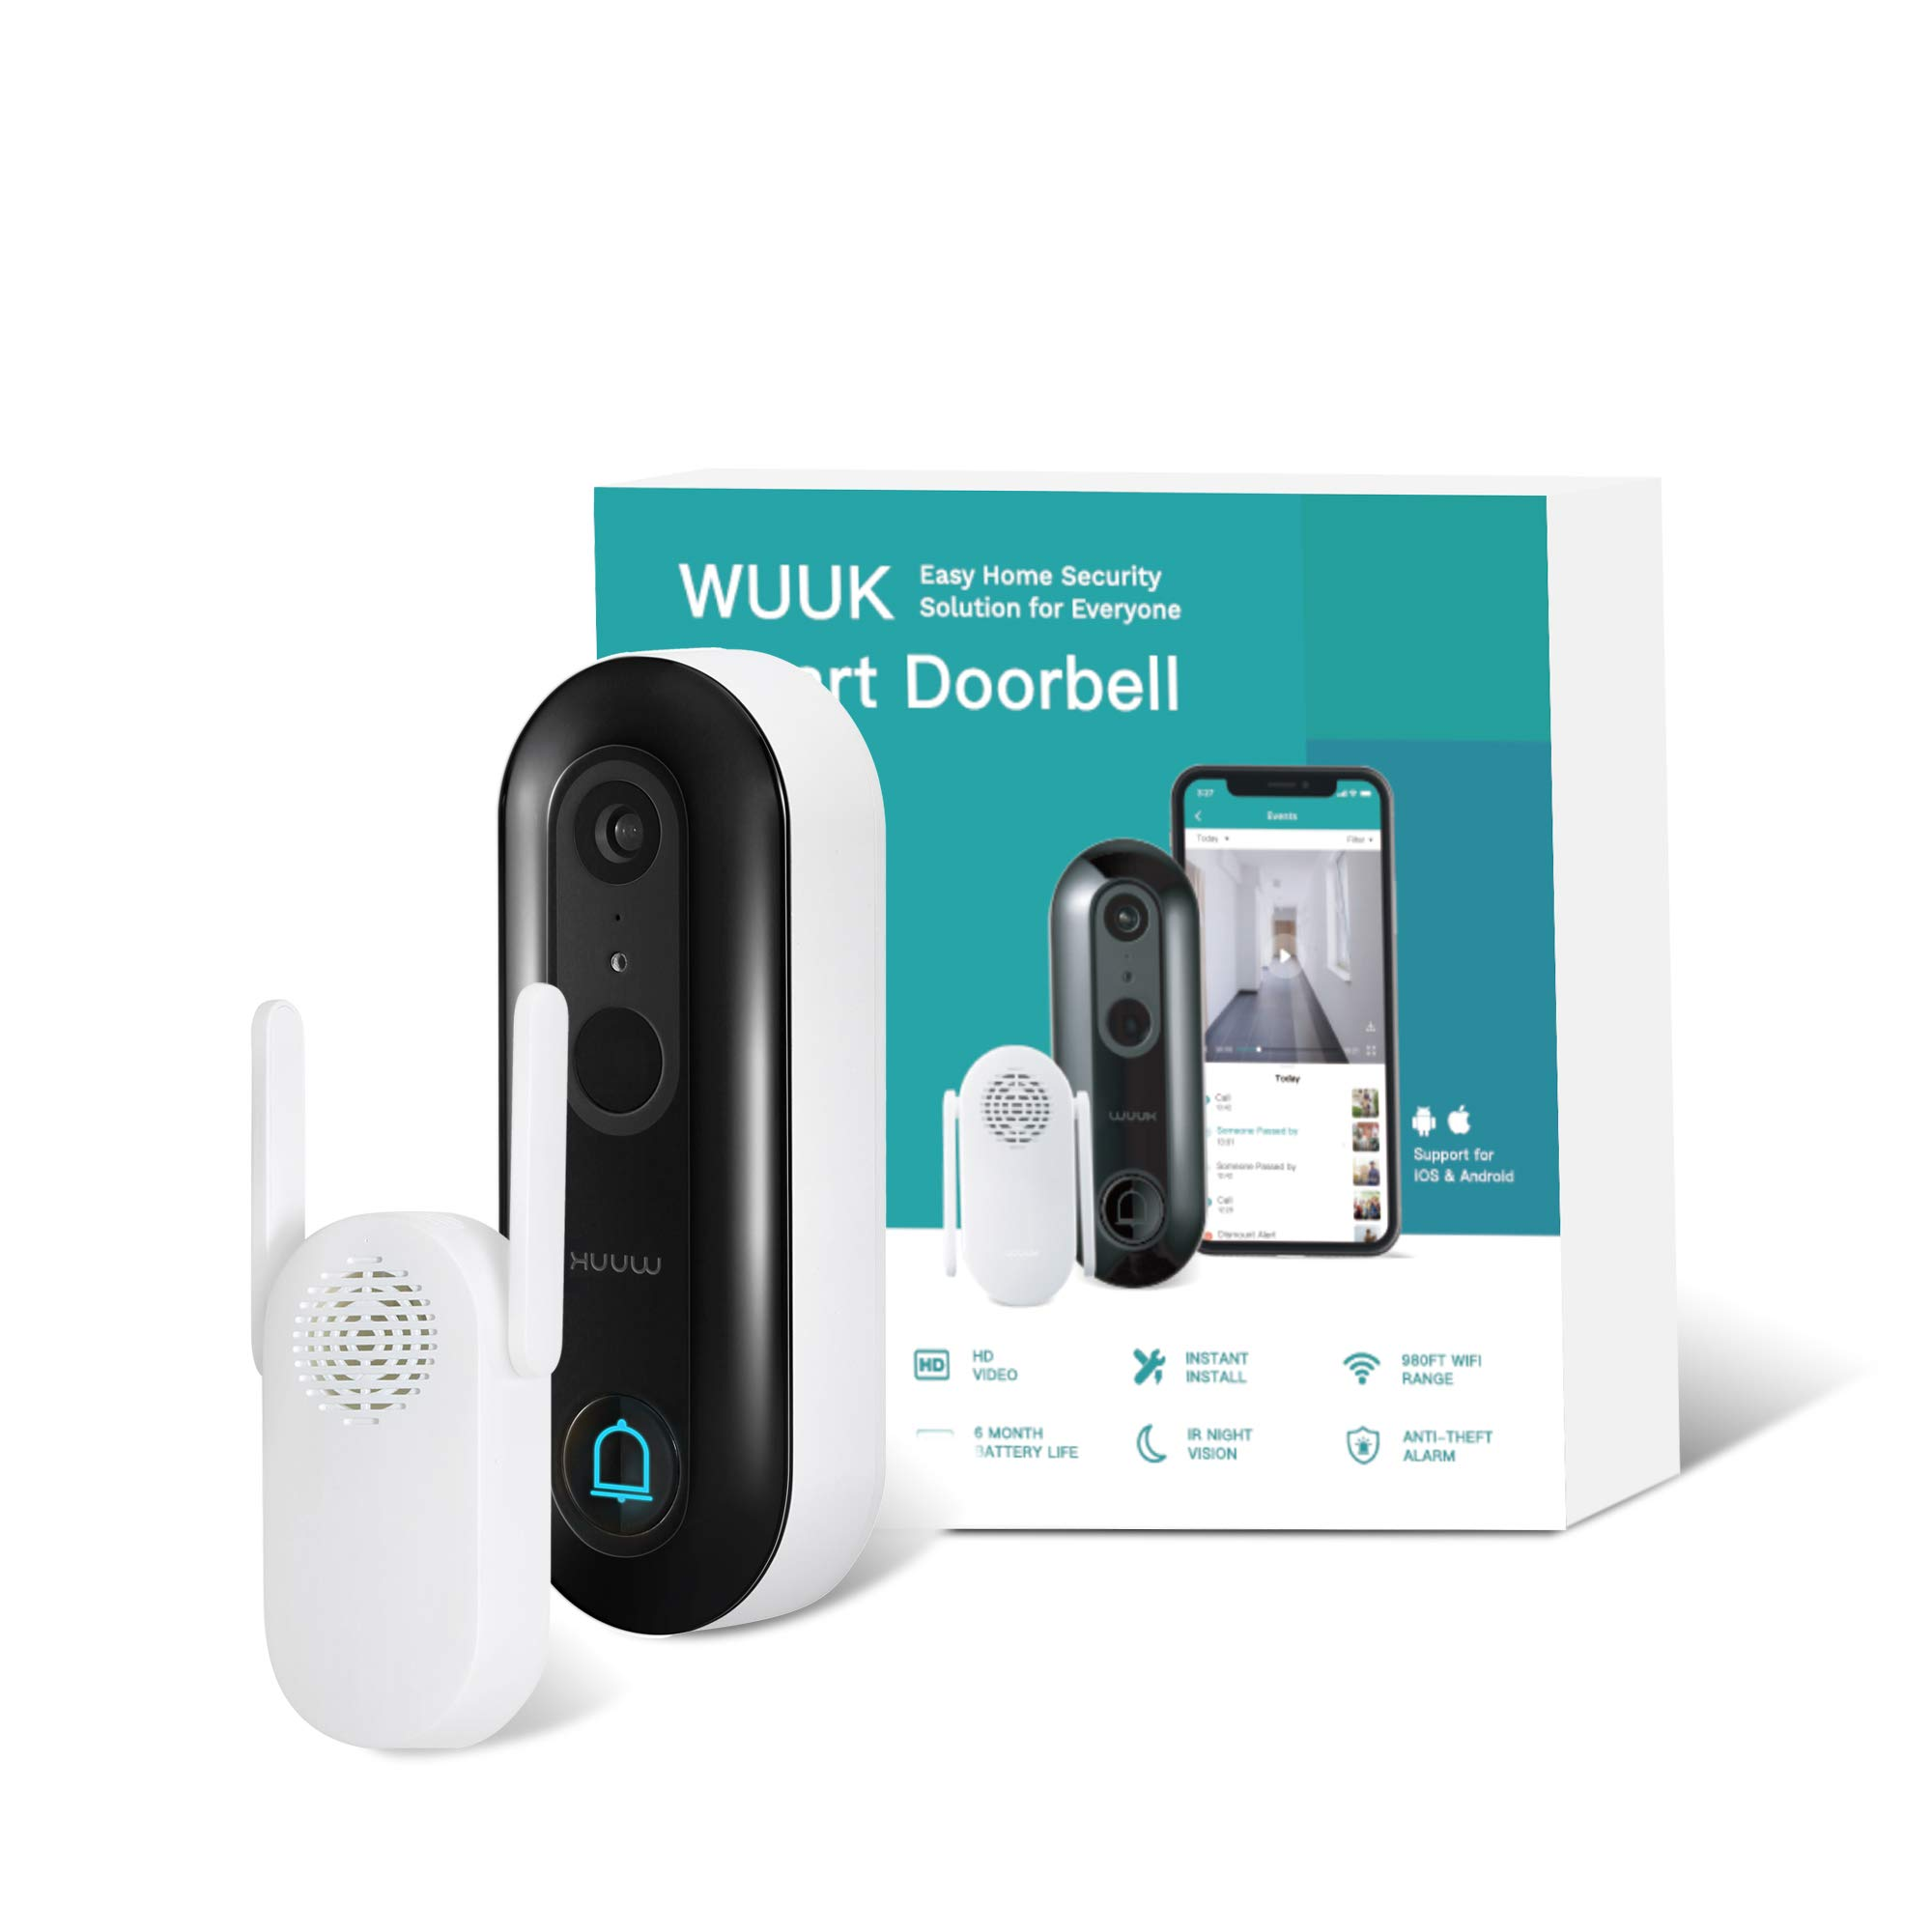 WUUK Video Doorbell Camera with Chime,Wireless Doorbell Camera (Battery-Powered), 1080p, No Monthly Fee, Human Detection, 2-Way Audio, IP65 Waterproof, Easy Installation, SDcard/Cloud Storage